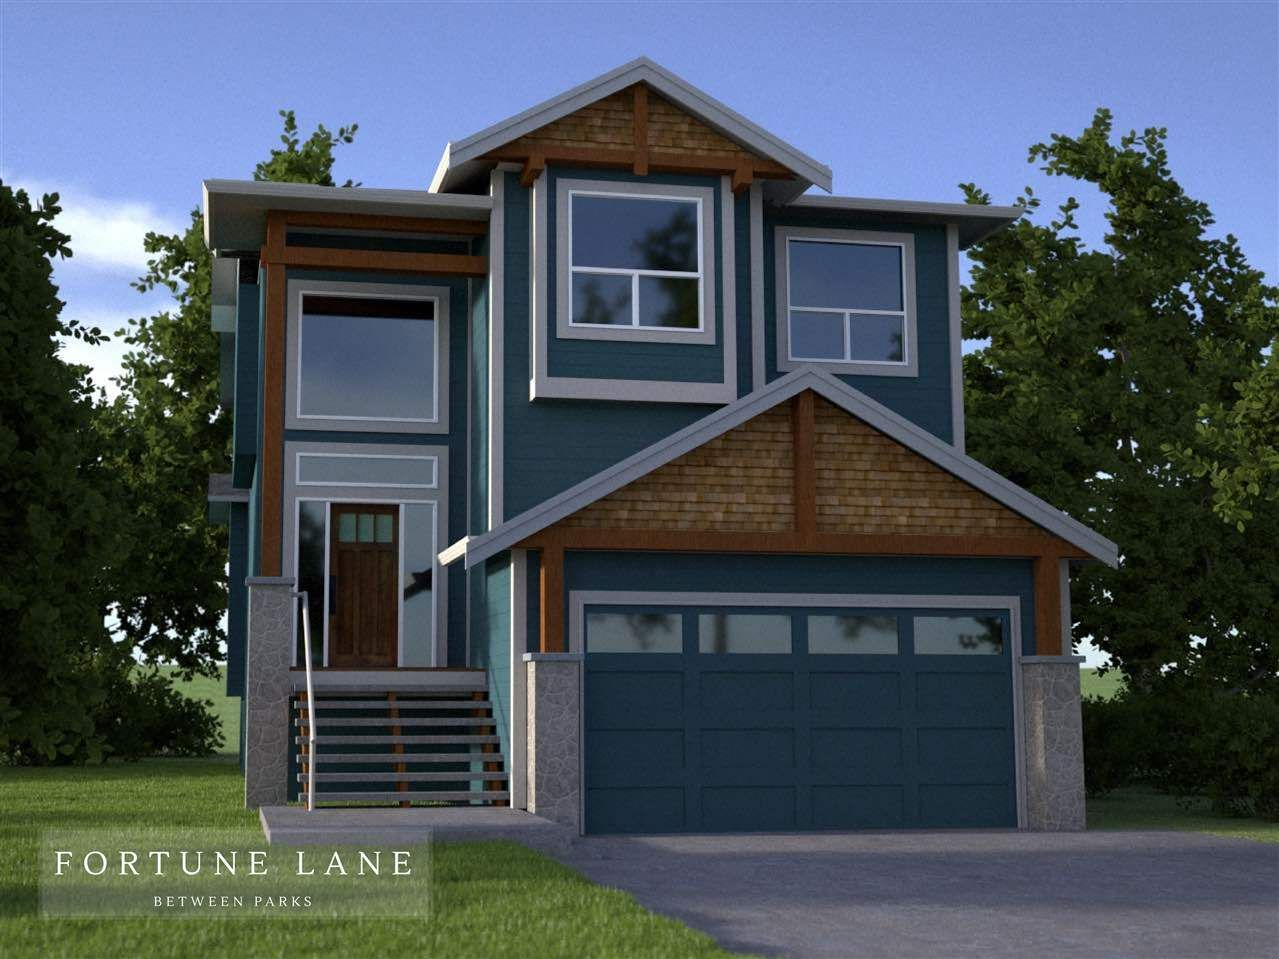 Main Photo: 3285 FORTUNE Lane in Coquitlam: Burke Mountain House for sale : MLS®# R2546681